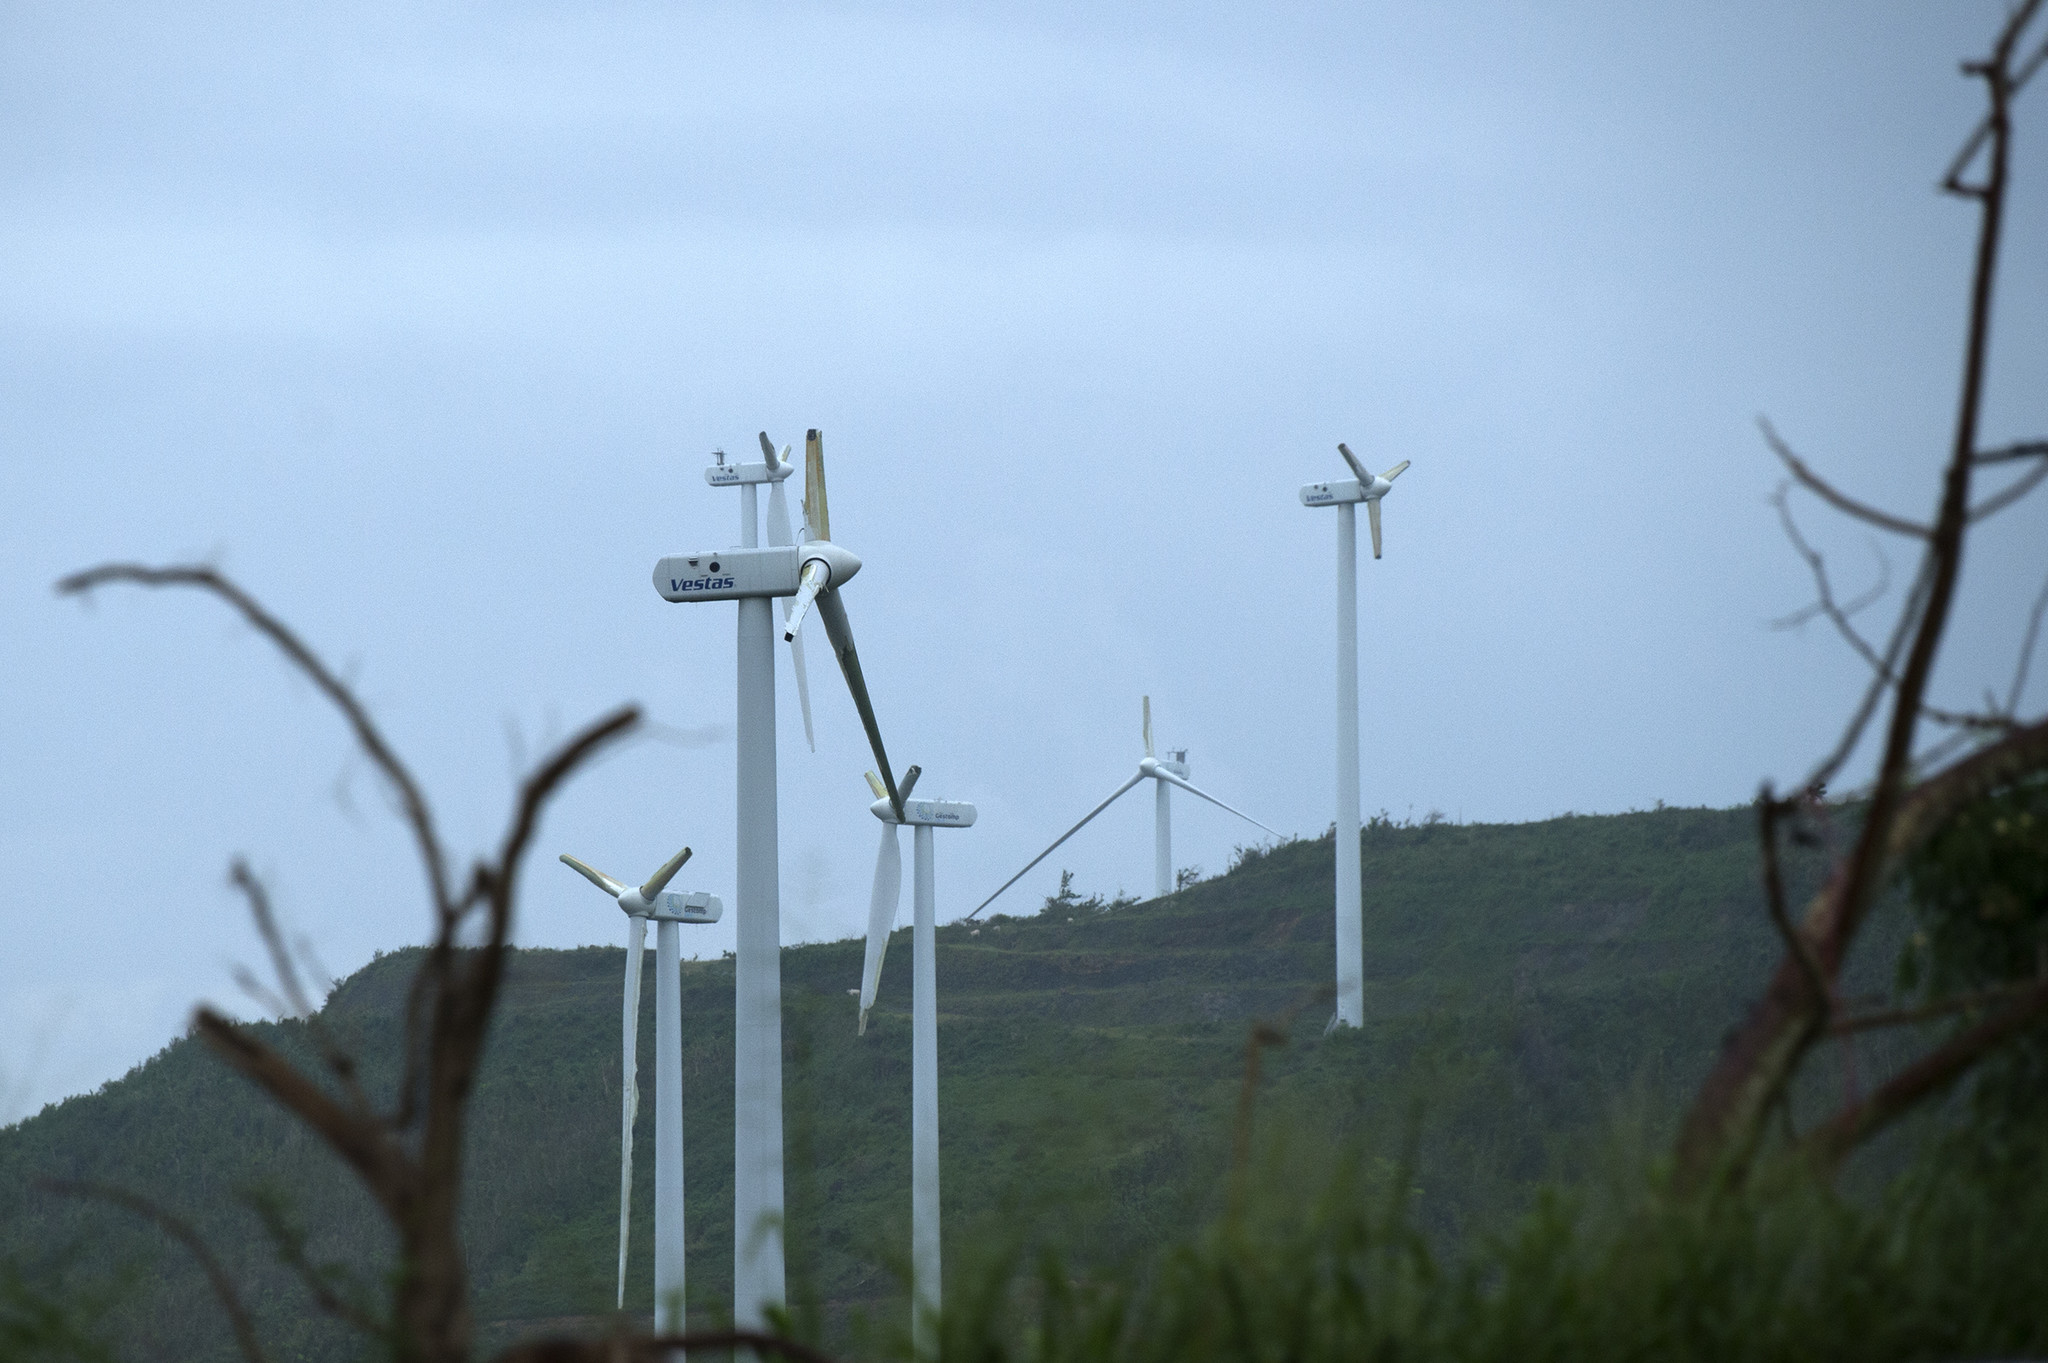 At a large-scale wind farm just outside of Fajardo, Puerto Rico, the high-tensile steel blades on the turbines were reduced to stubs by Hurricane Maria